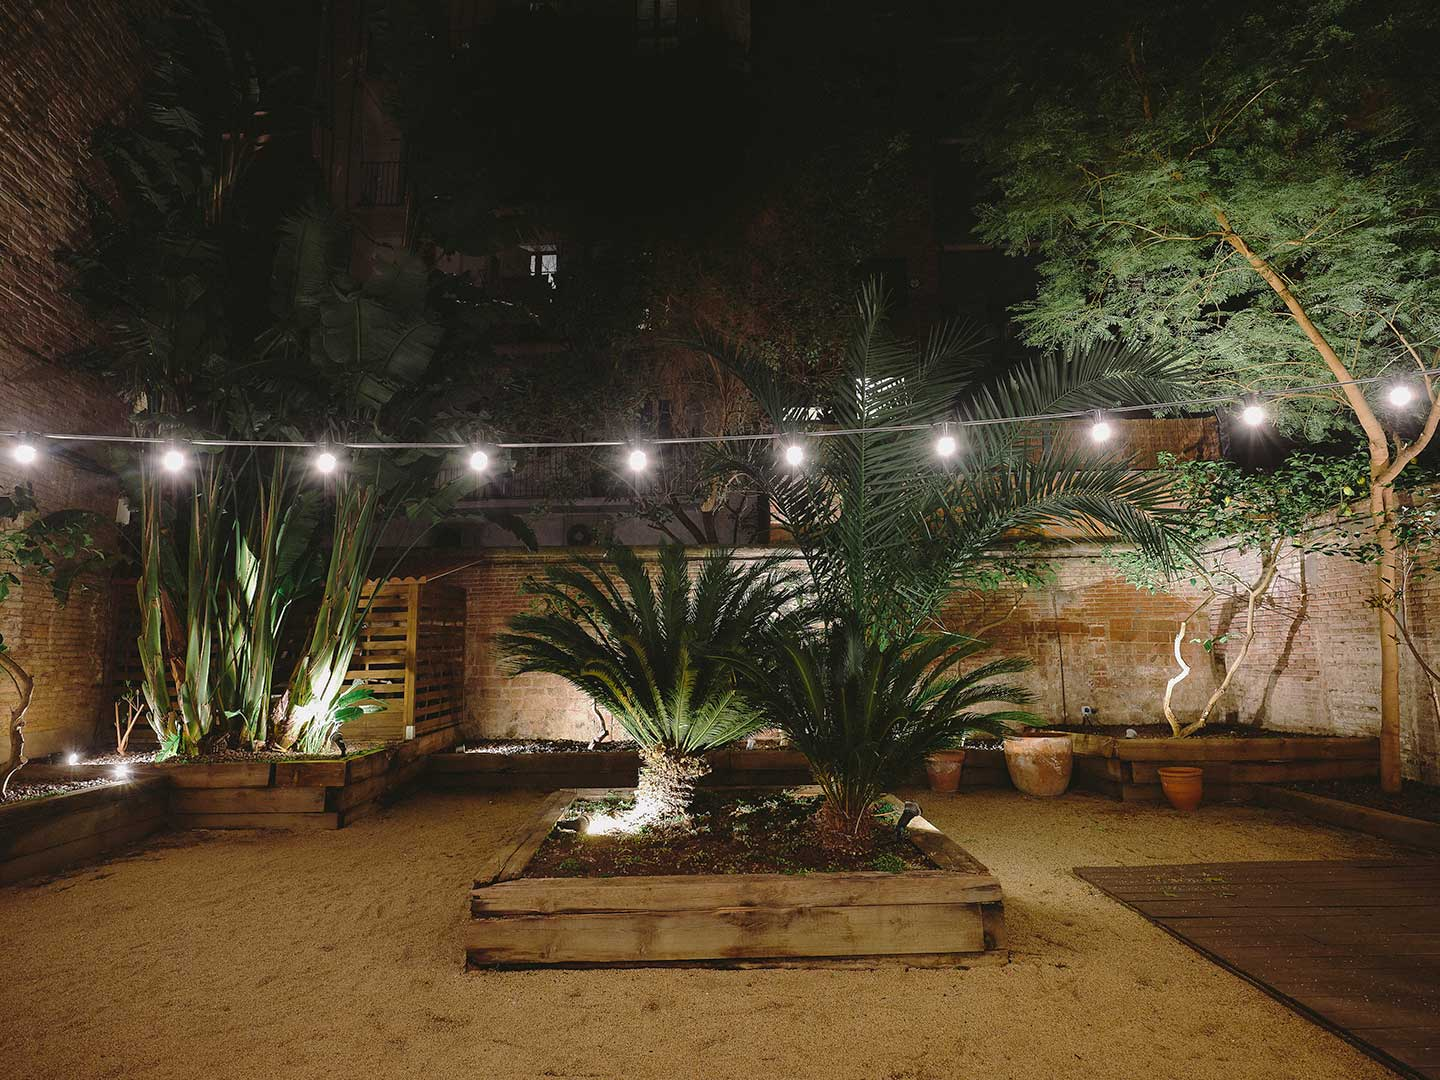 Interior garden at night, Mil hojas